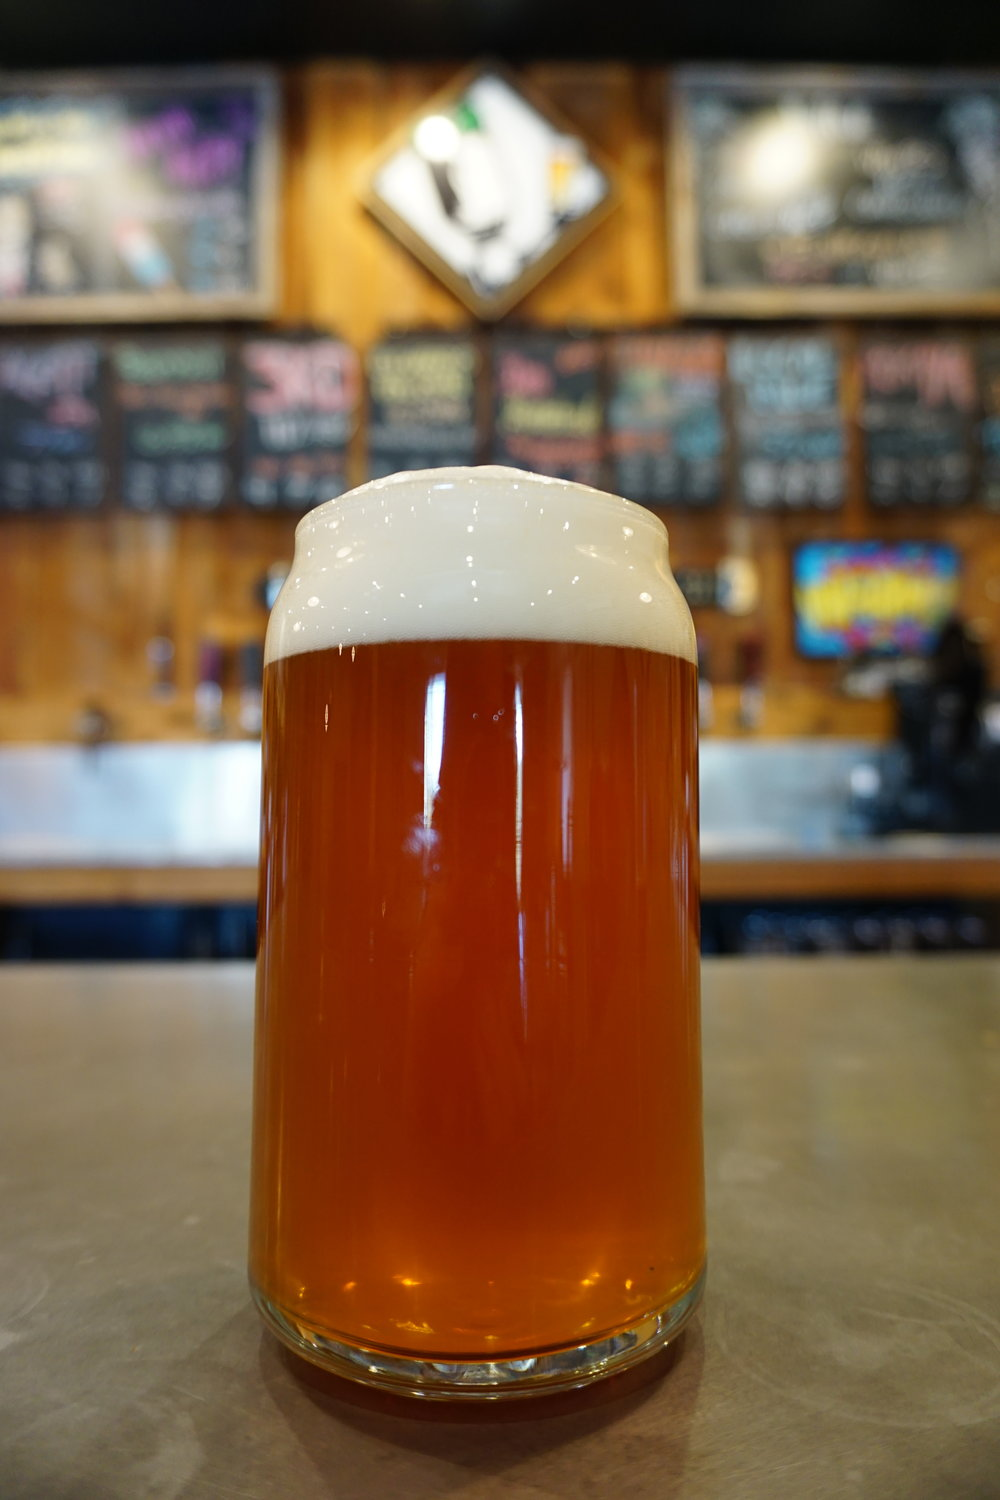 Shuttlebus, Rye IPA, 7% - Brewed with rye and crystal malts, then dry hopped with five different hops to give this brew strong hop character paired with spicy caramel tones.